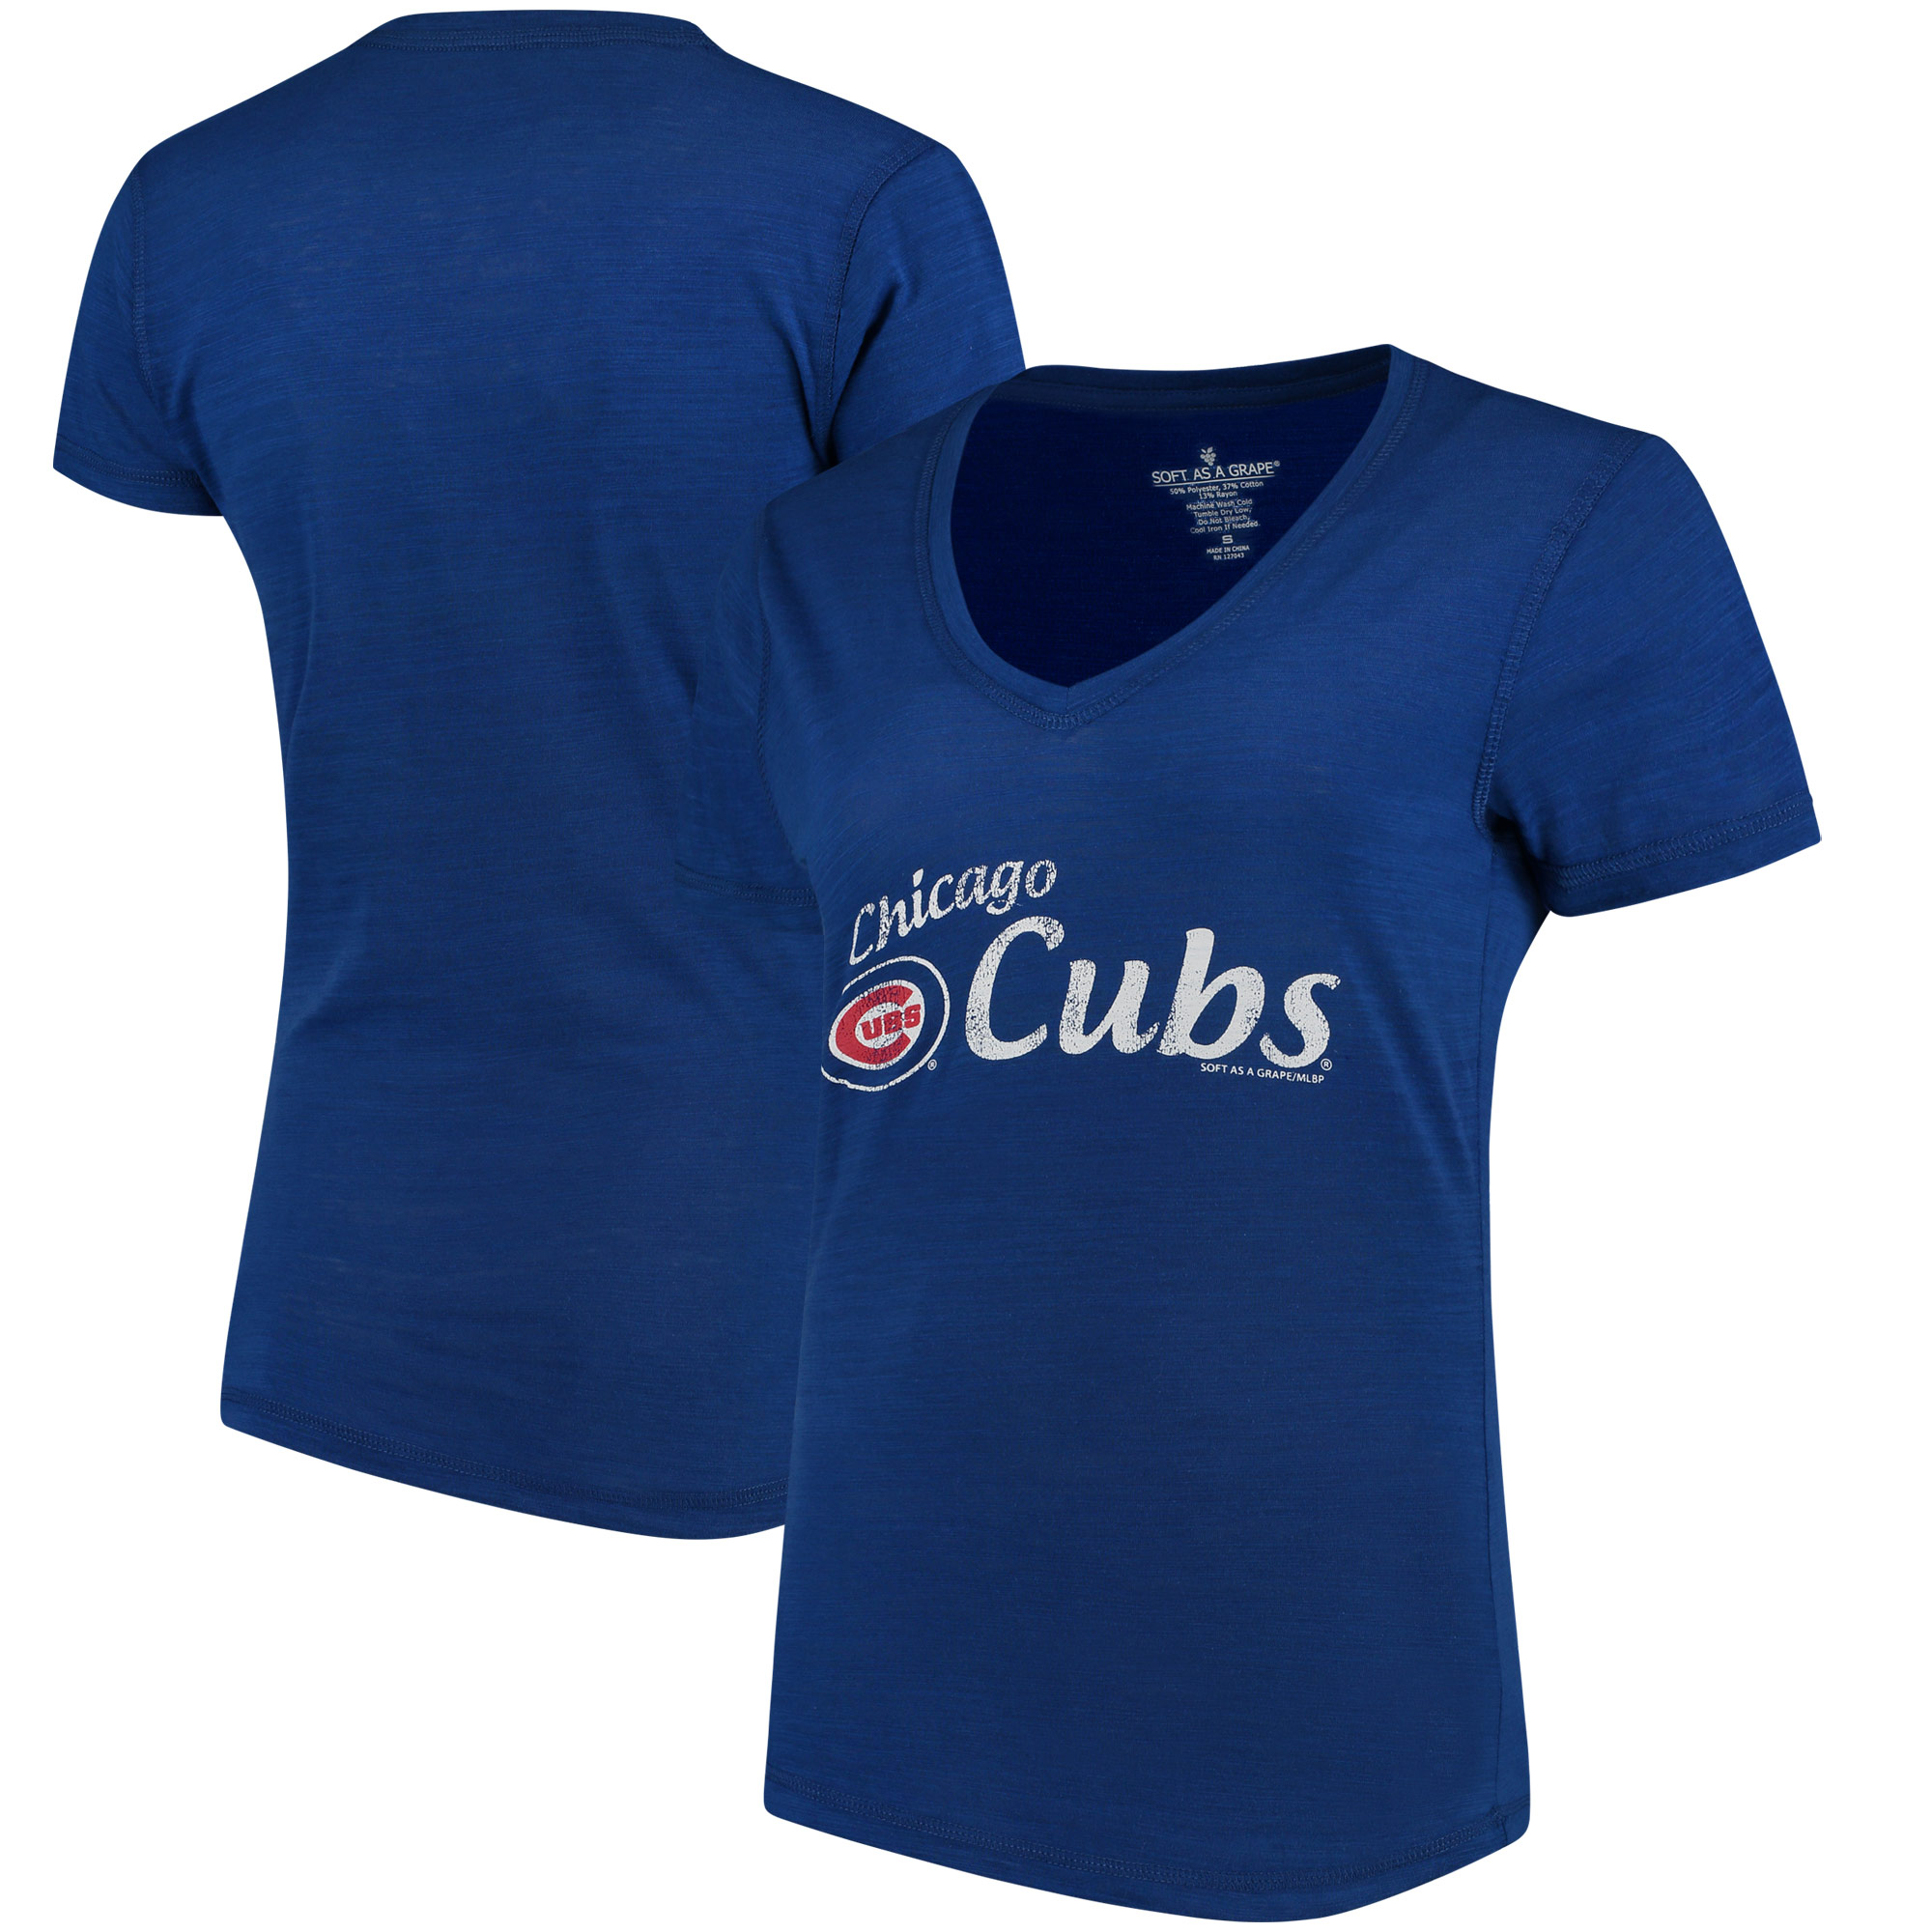 Chicago Cubs Soft As A Grape Women's Double Steal Tri-Blend V-Neck T-Shirt - Royal